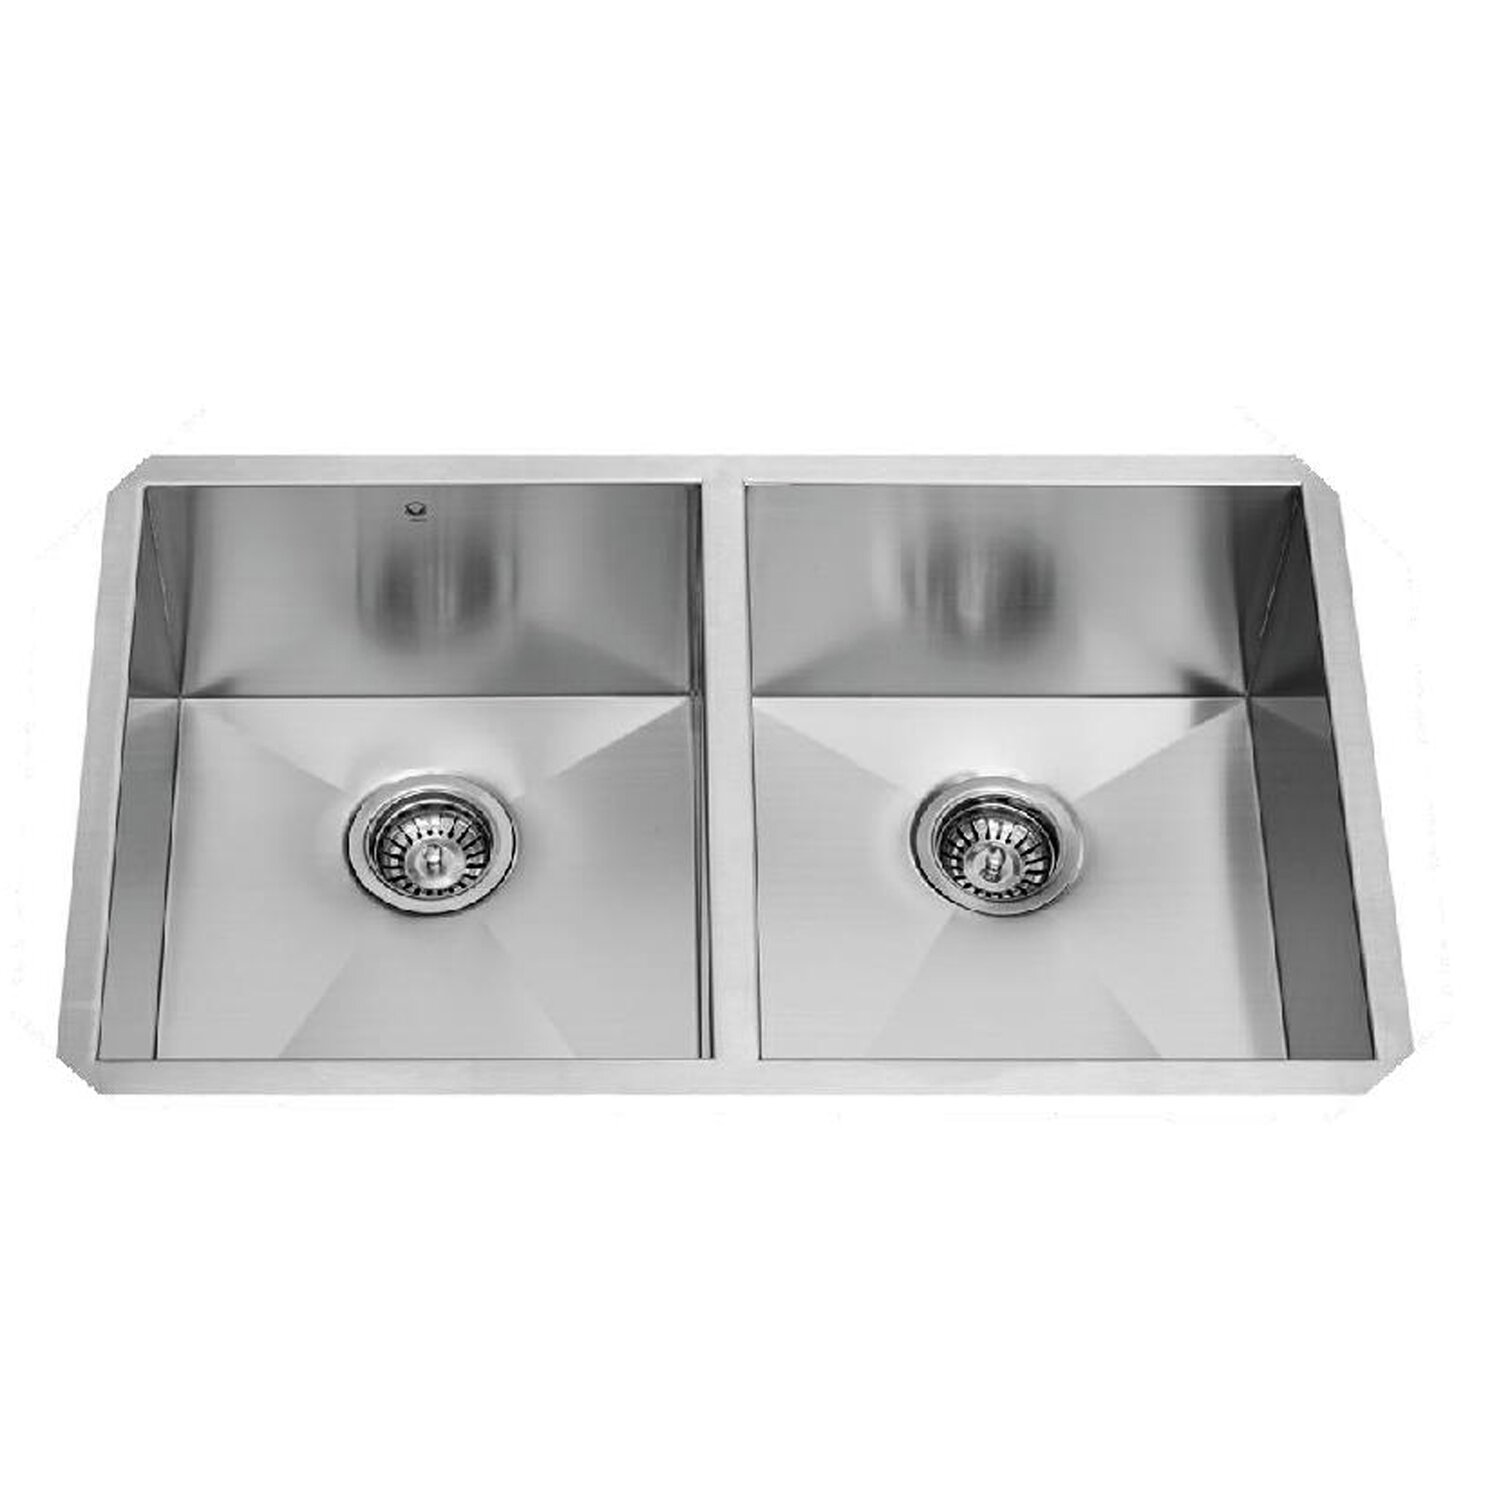 Images of Steel Kitchen Sink - Patiofurn Home Design Ideas